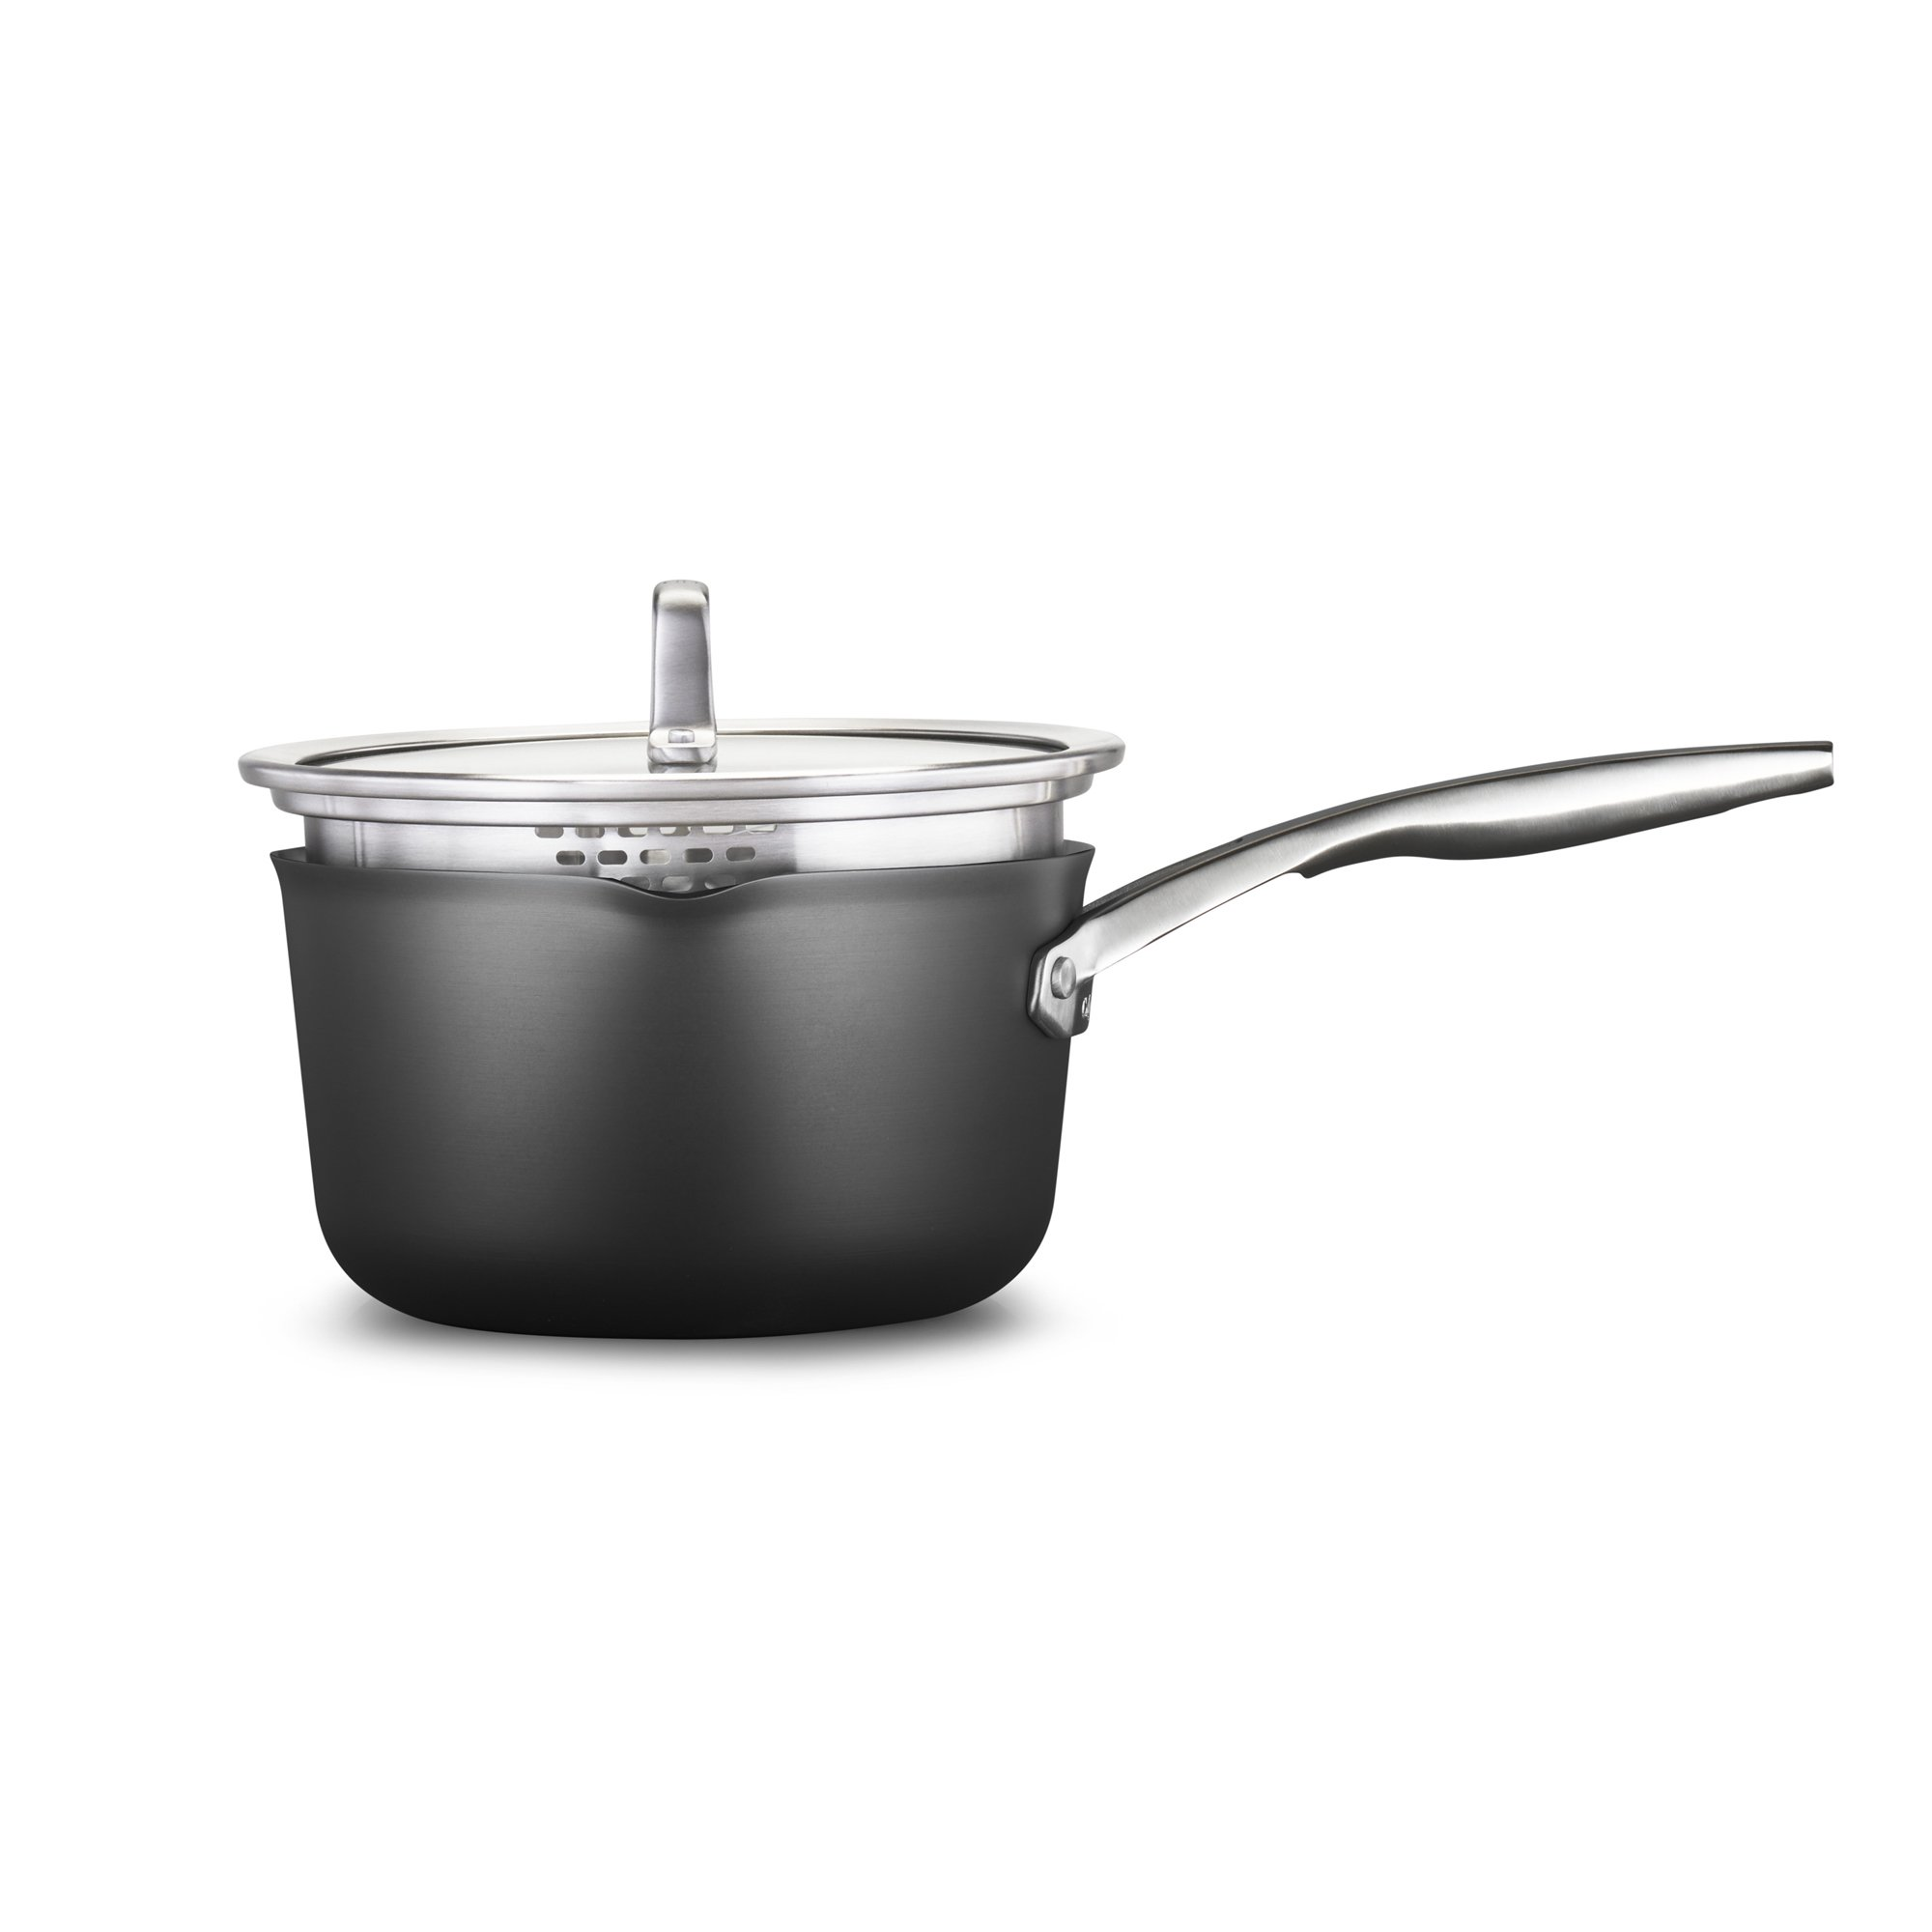 Calphalon Premier Hard-Anodized Nonstick 3.5-Quart Pour and Strain Saucepan with Cover